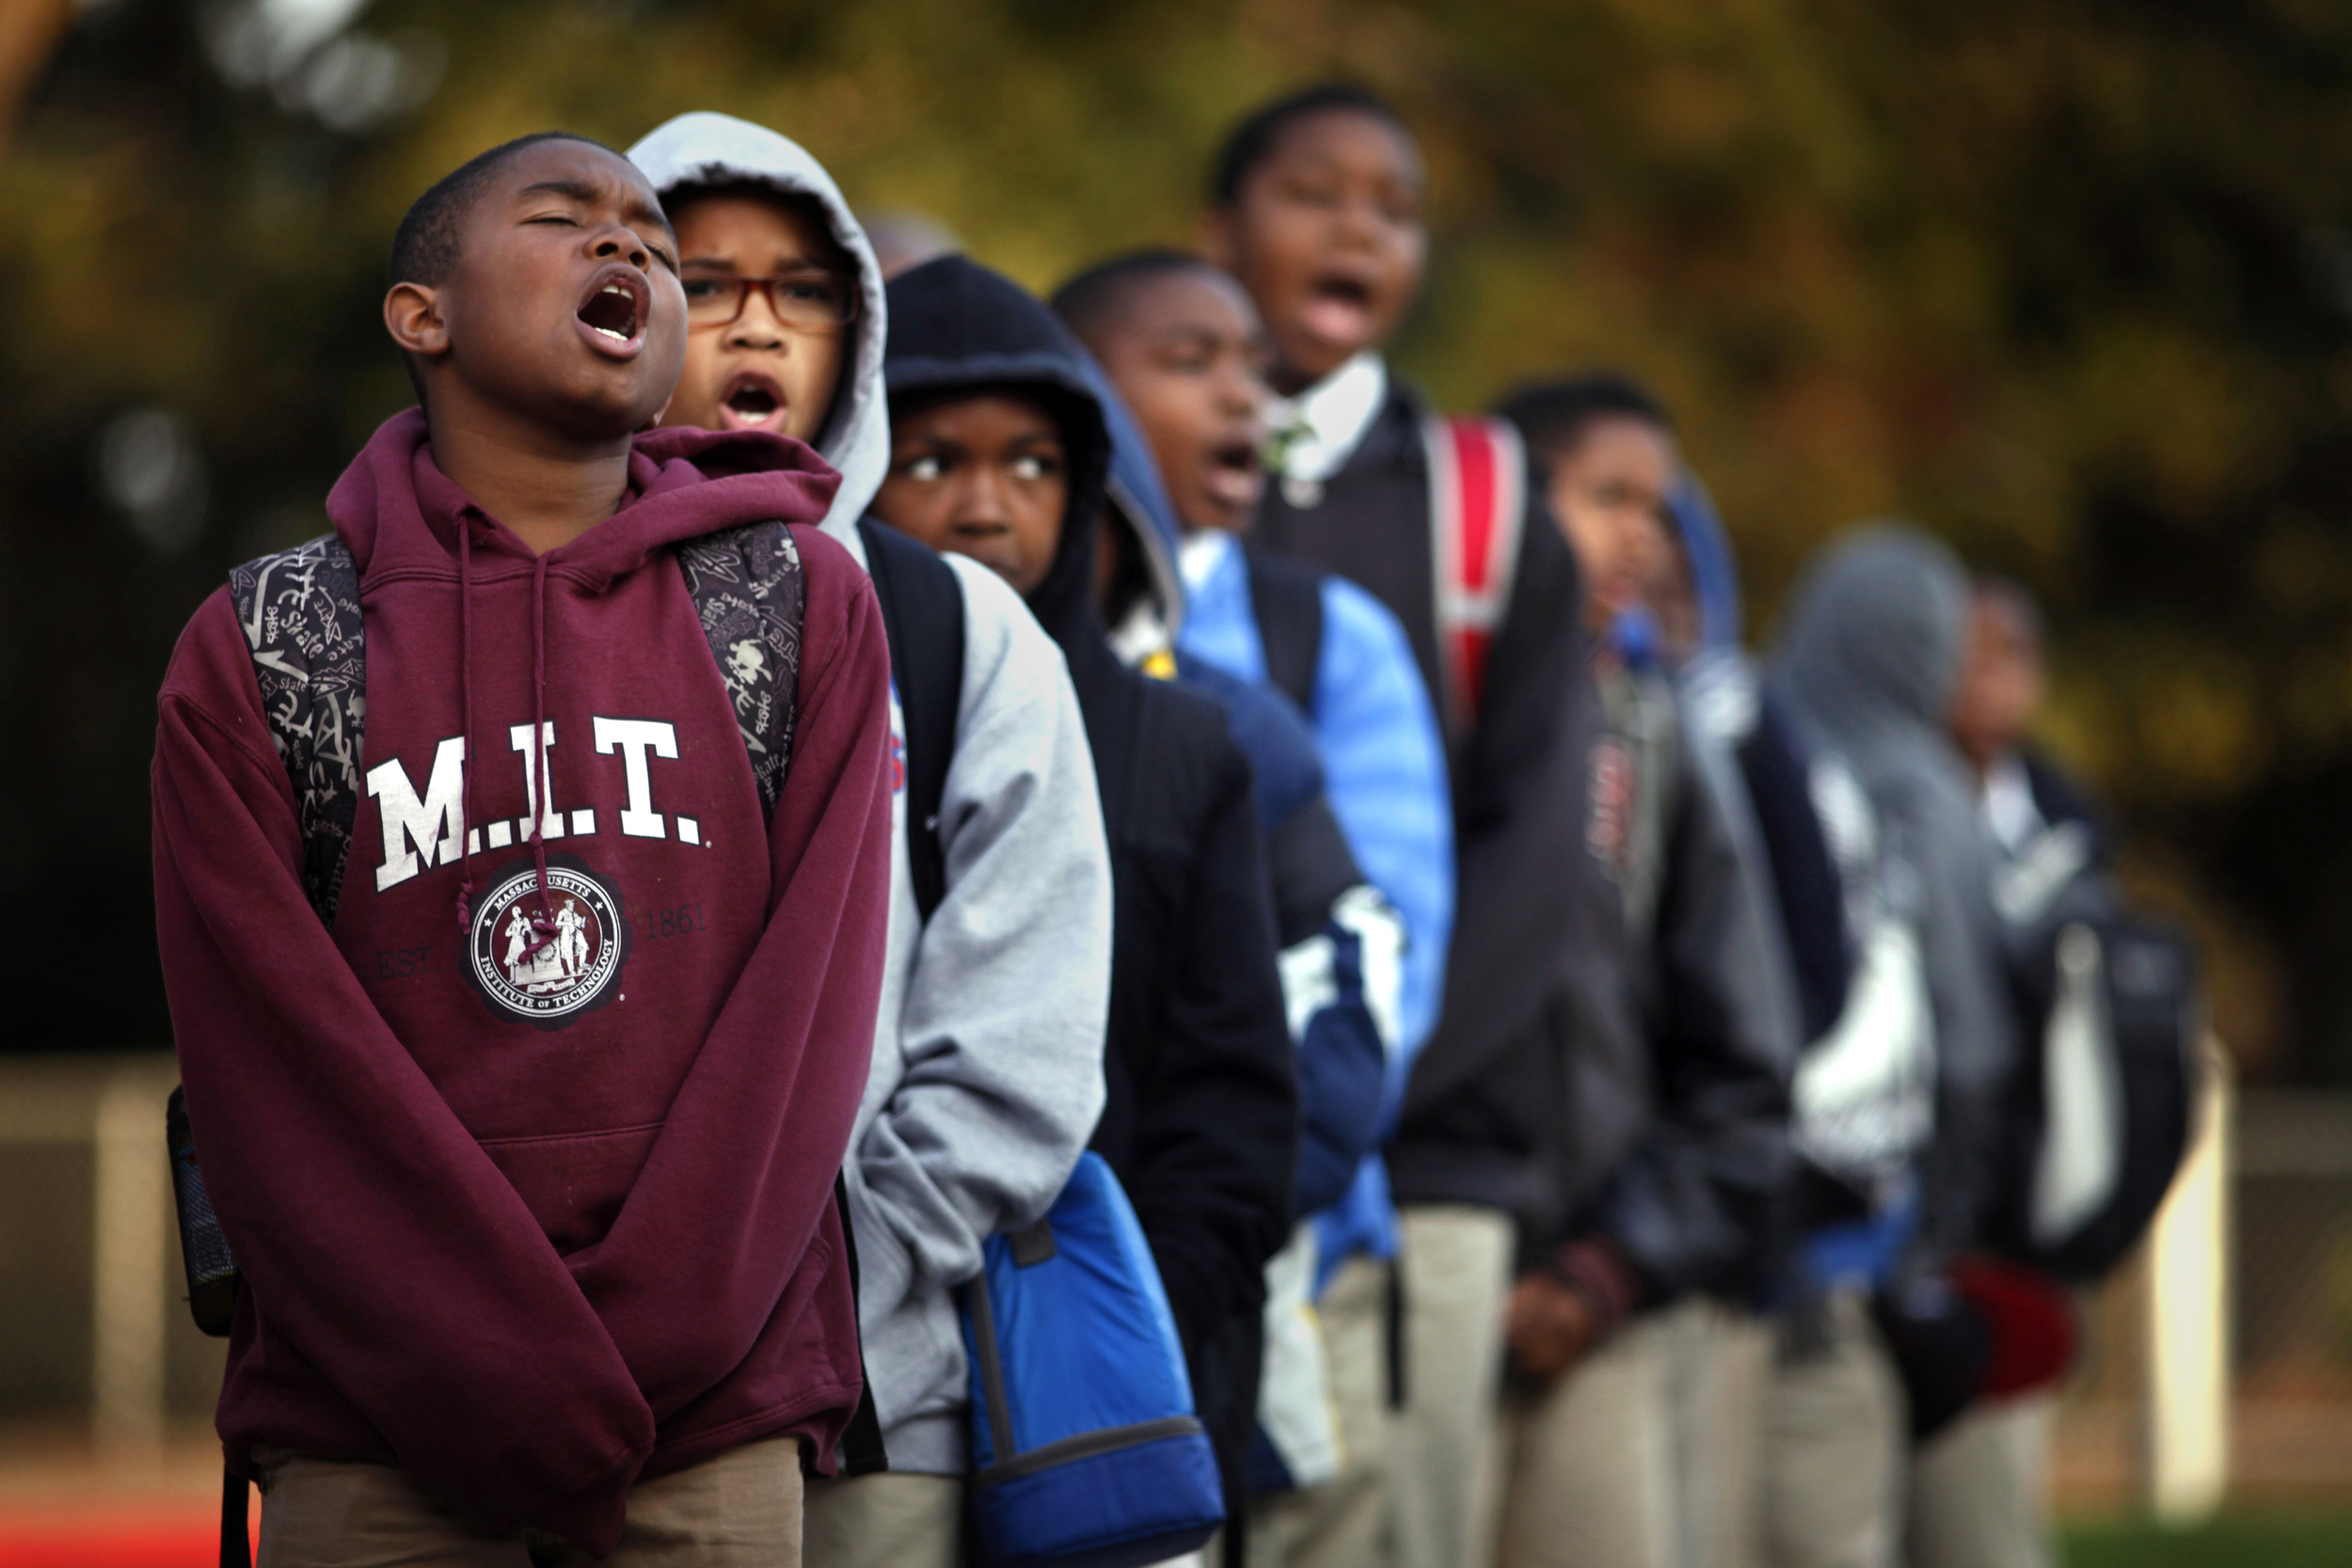 """Imir Stills-Bey, left, Donavon Richard and Kavion Hammond lead Mr. Peter Wilson's sixth-grade class in the """"scholar holler"""" at the start of school. The chant is done every morning before class at the 100 Black Men Community Charter School to promote a eagerness for learning.© Lacy Atkins/San Francisco Chronicle"""